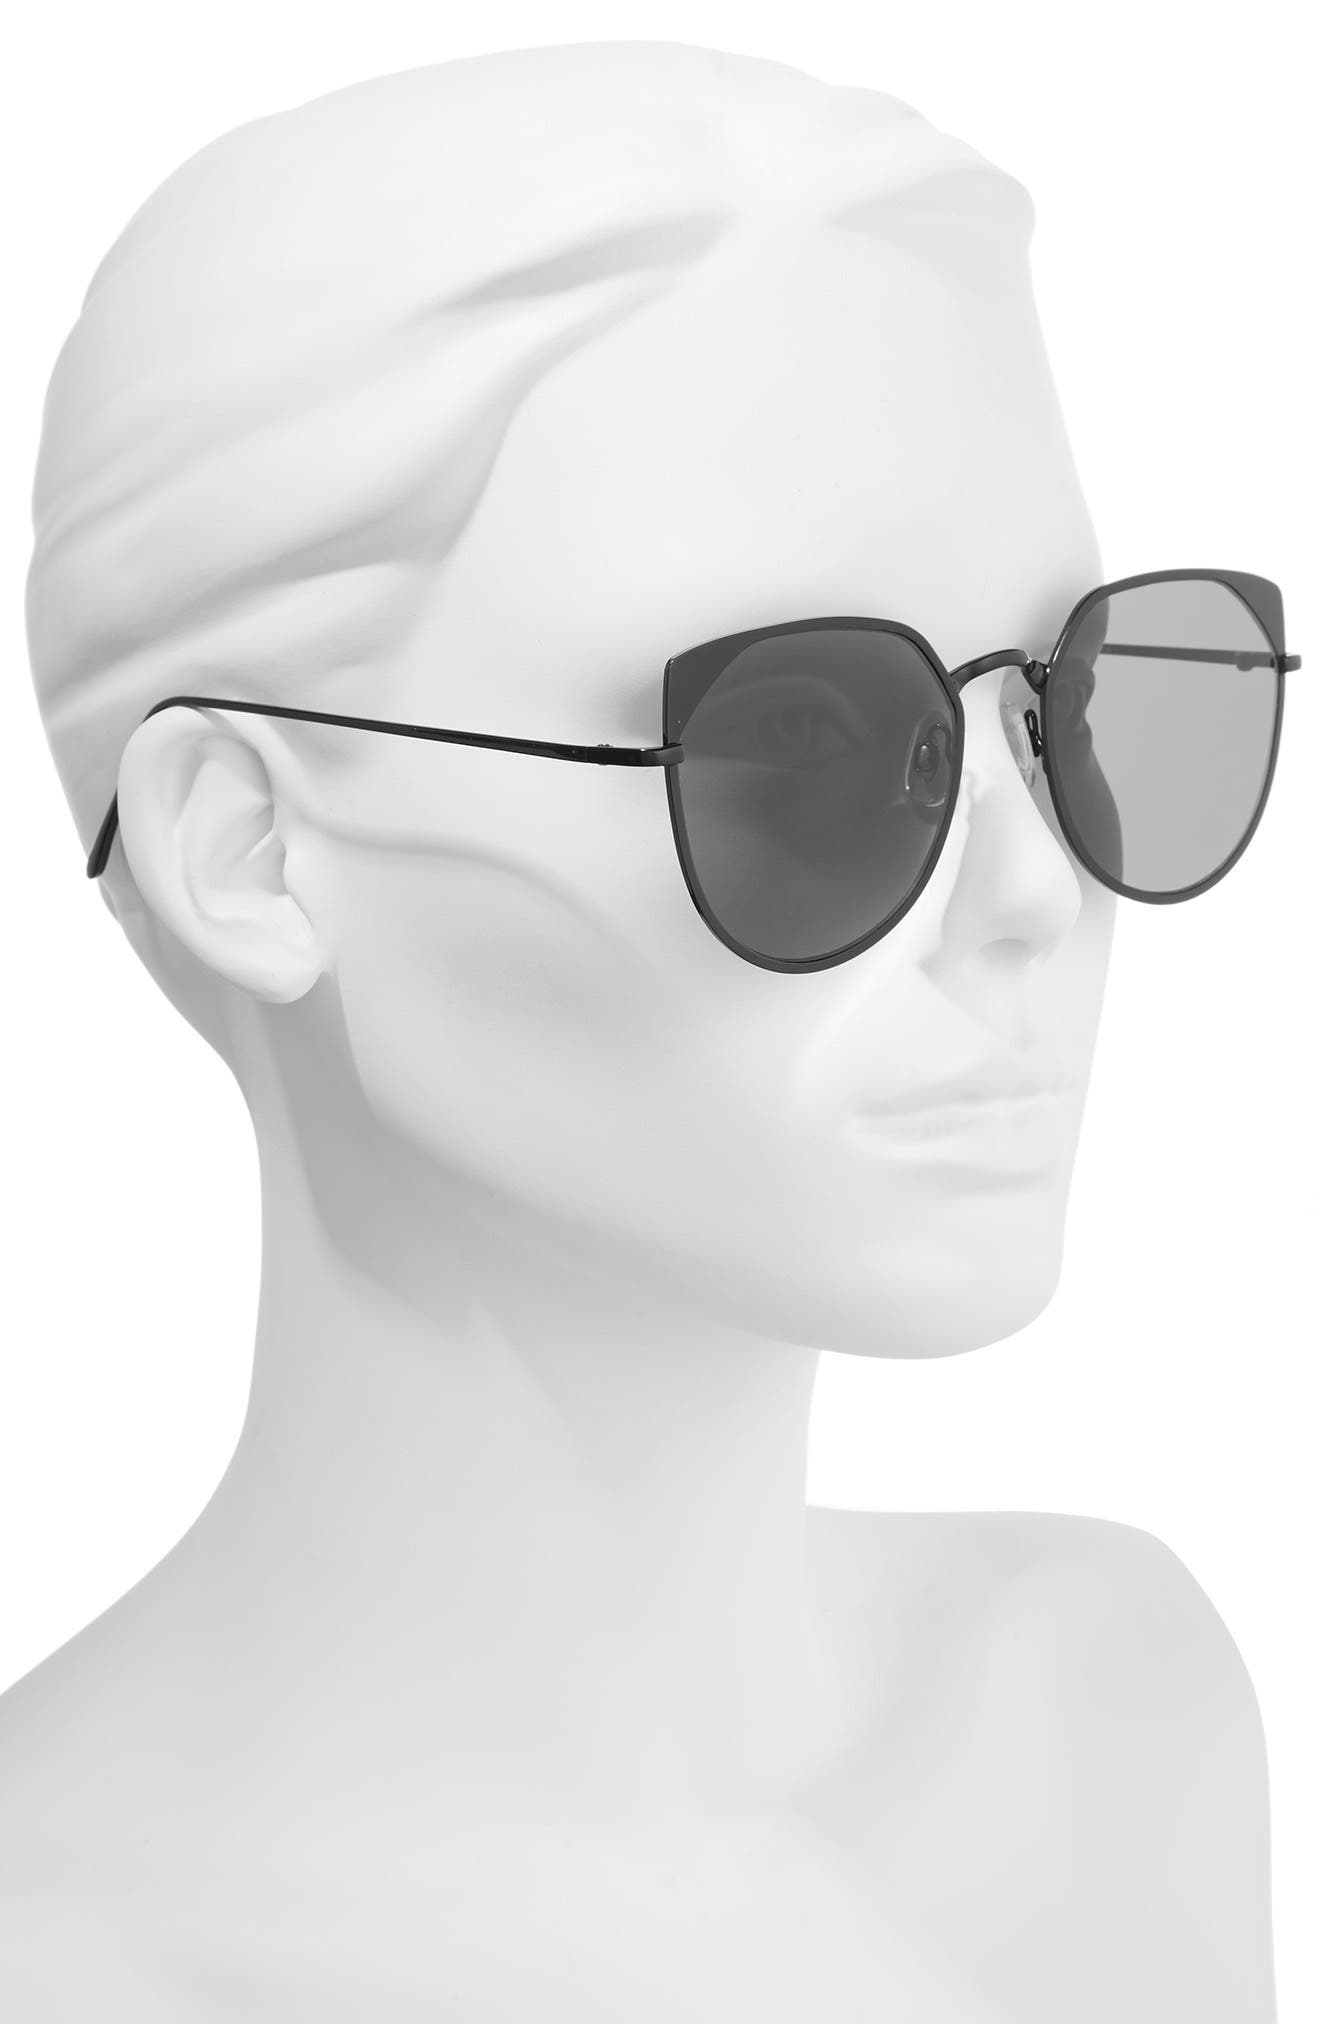 55mm Mirrored Cat Eye Sunglasses,                             Alternate thumbnail 3, color,